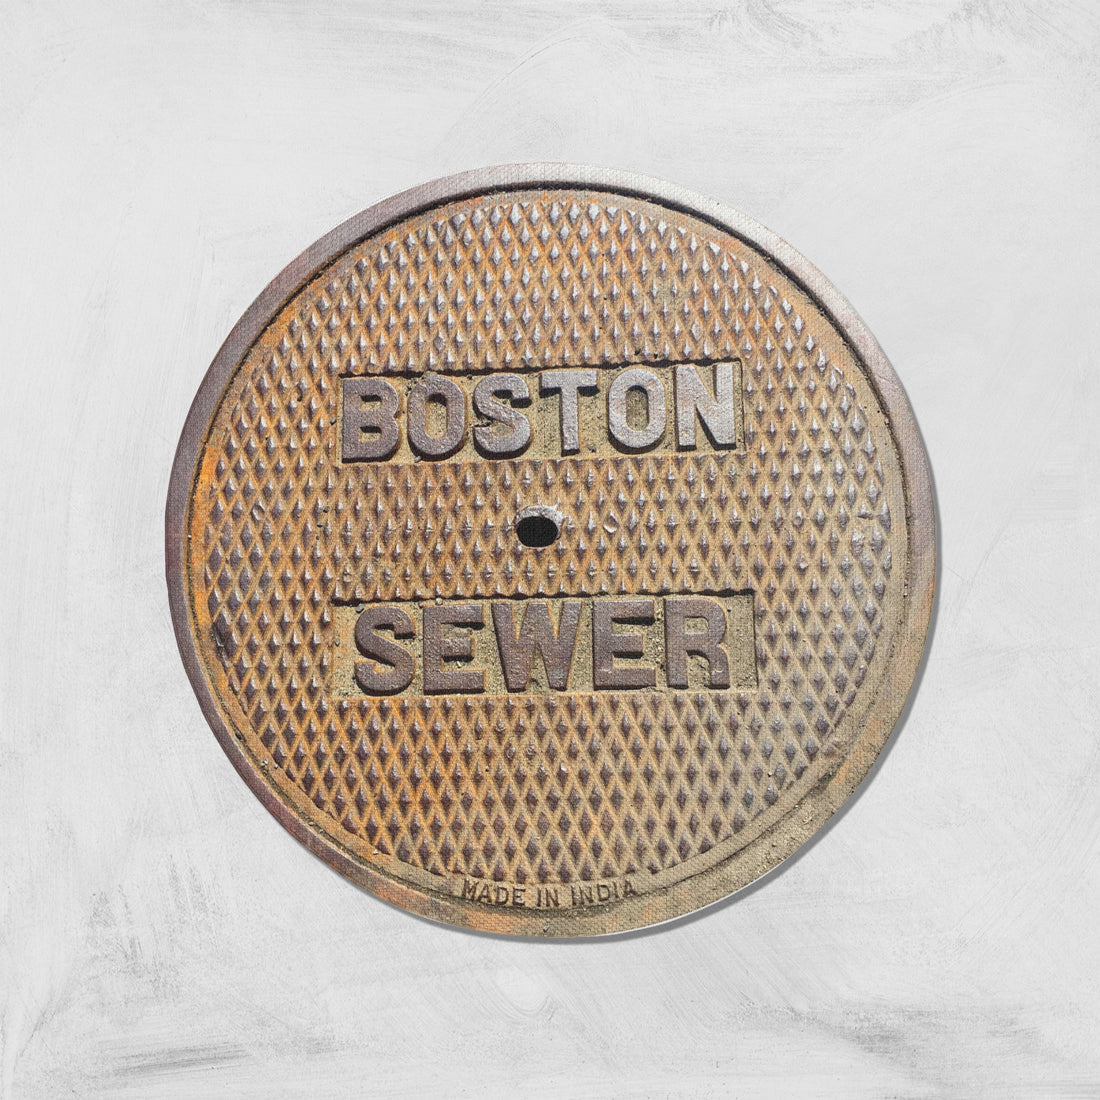 EAST SERIES - Sewer Cover Doormat, Trivet, Coaster - Boston, MA